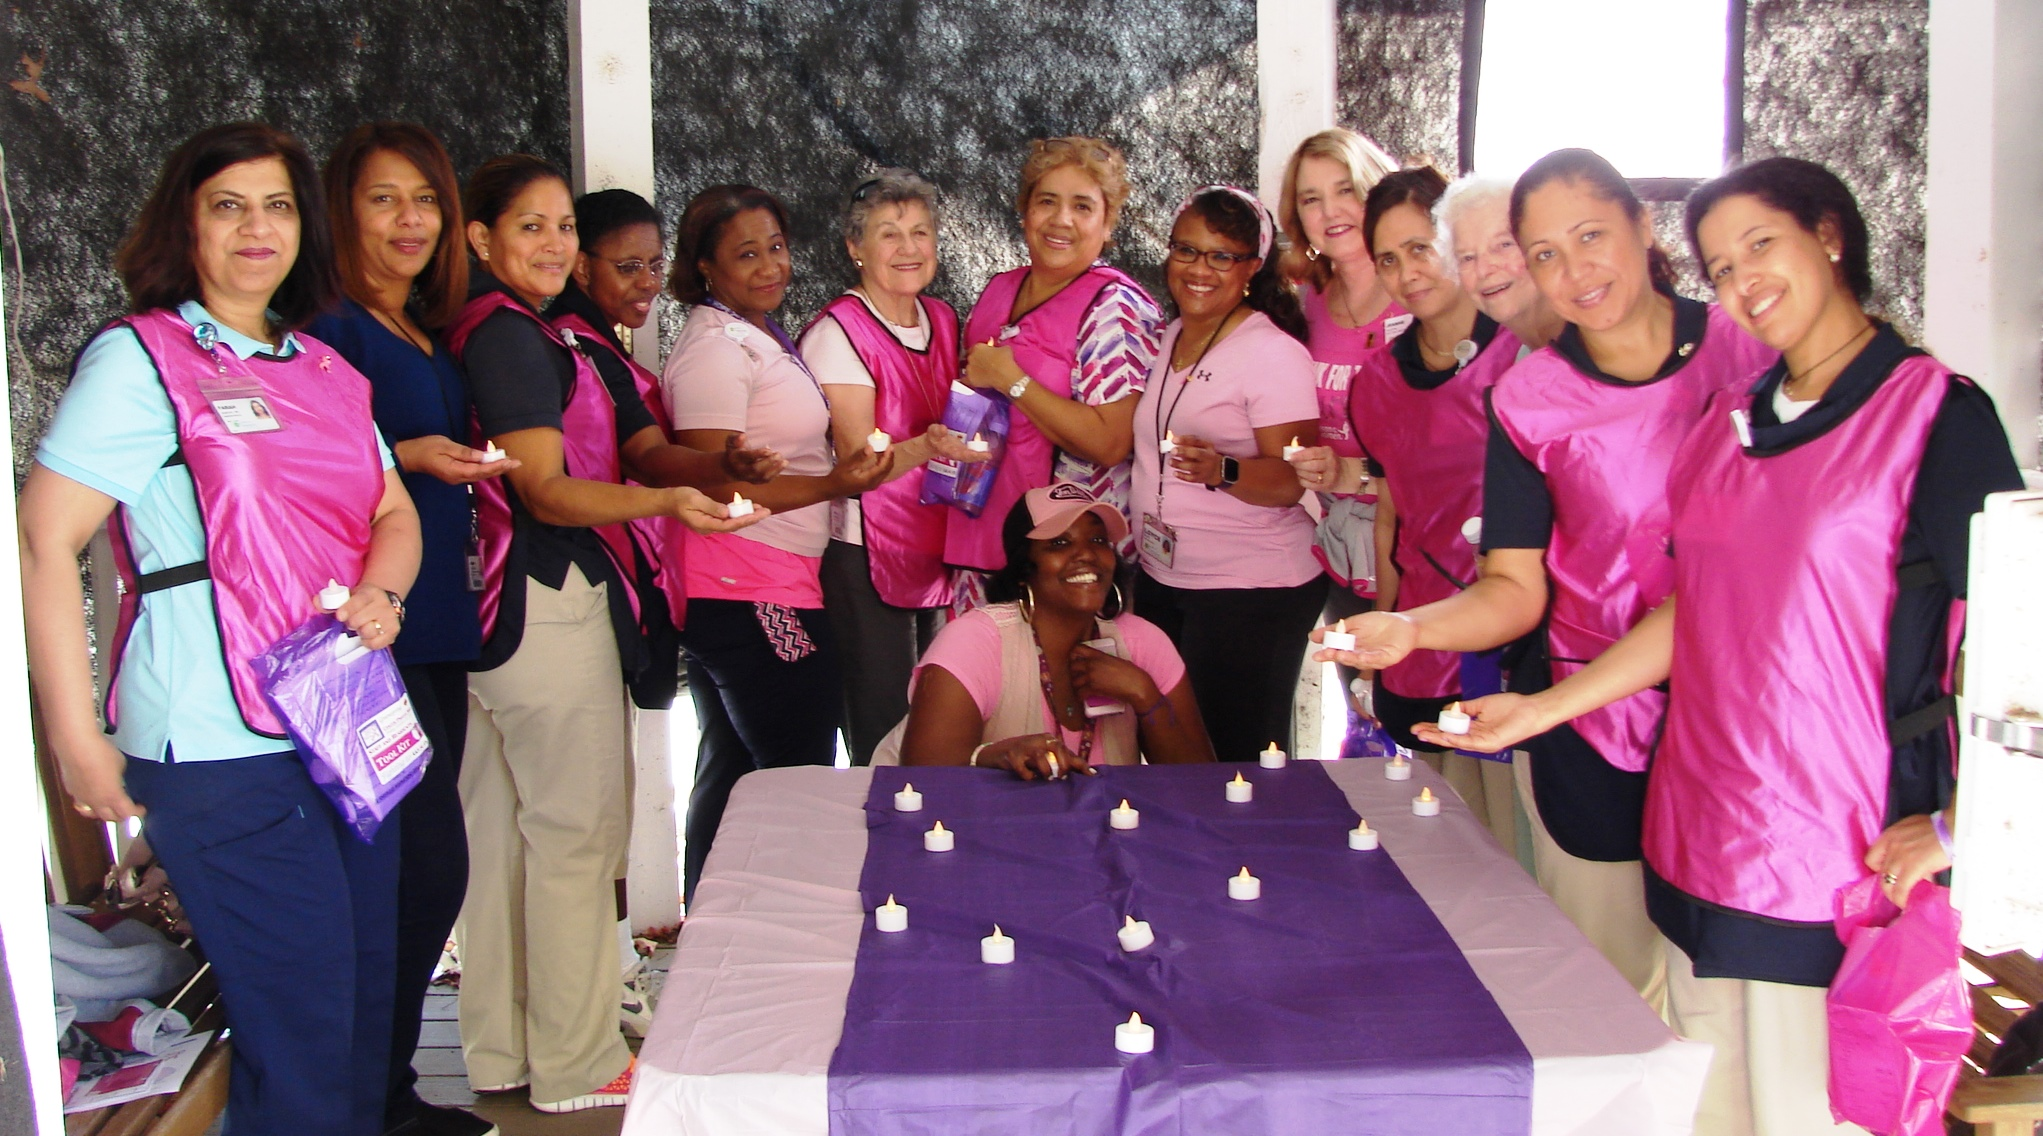 Just one of the many ways Greenspring cares for the overall wellness of its employees, the Erickson Living community hosts an Annual Cancer Prayer Walk during Breast Cancer Awareness Month. Participants light a candle in honor of a loved one who is fighti